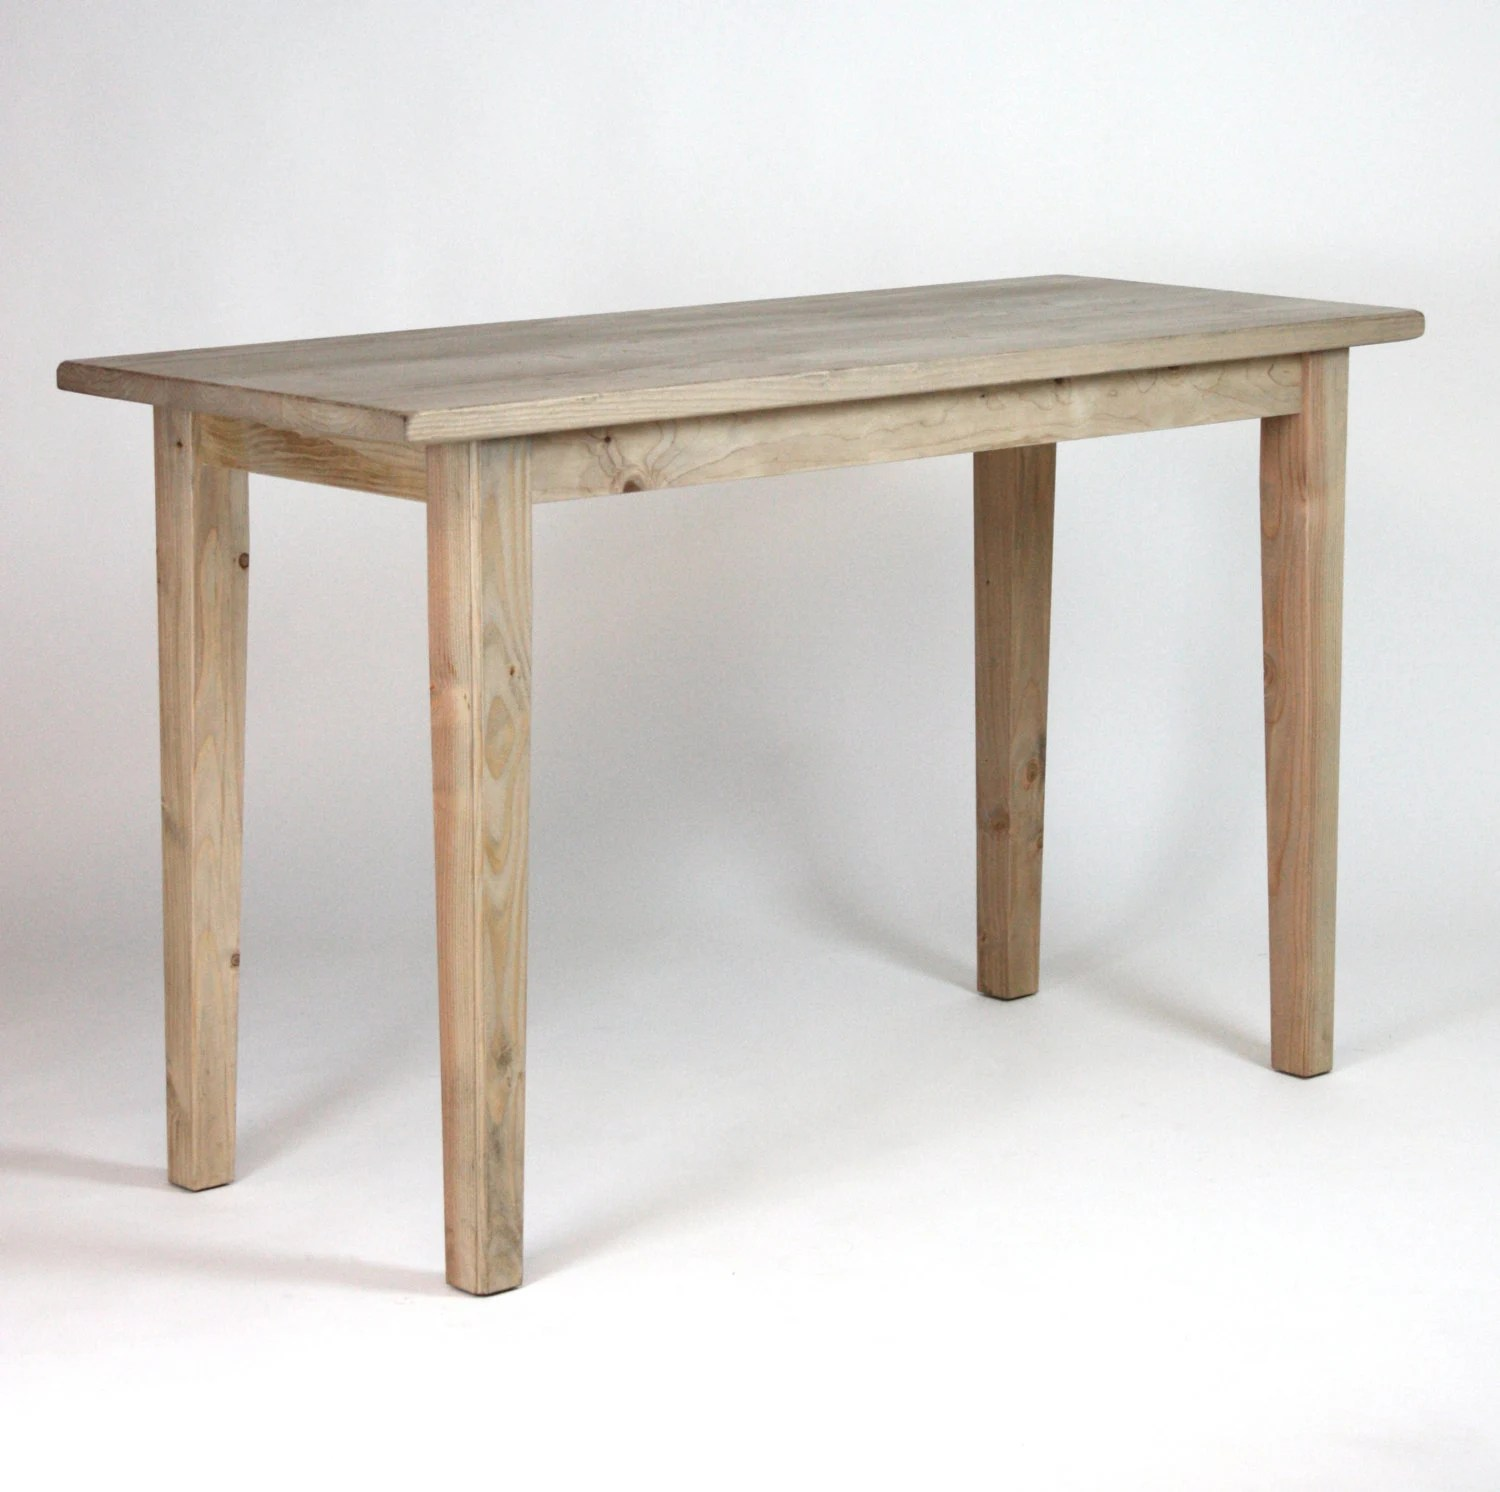 kitchen island table kitchen island tables Handmade French Kitchen Island Counter Height Table Reclaimed Wood French Tall Table French Farmhouse Kitchen Island Table 27